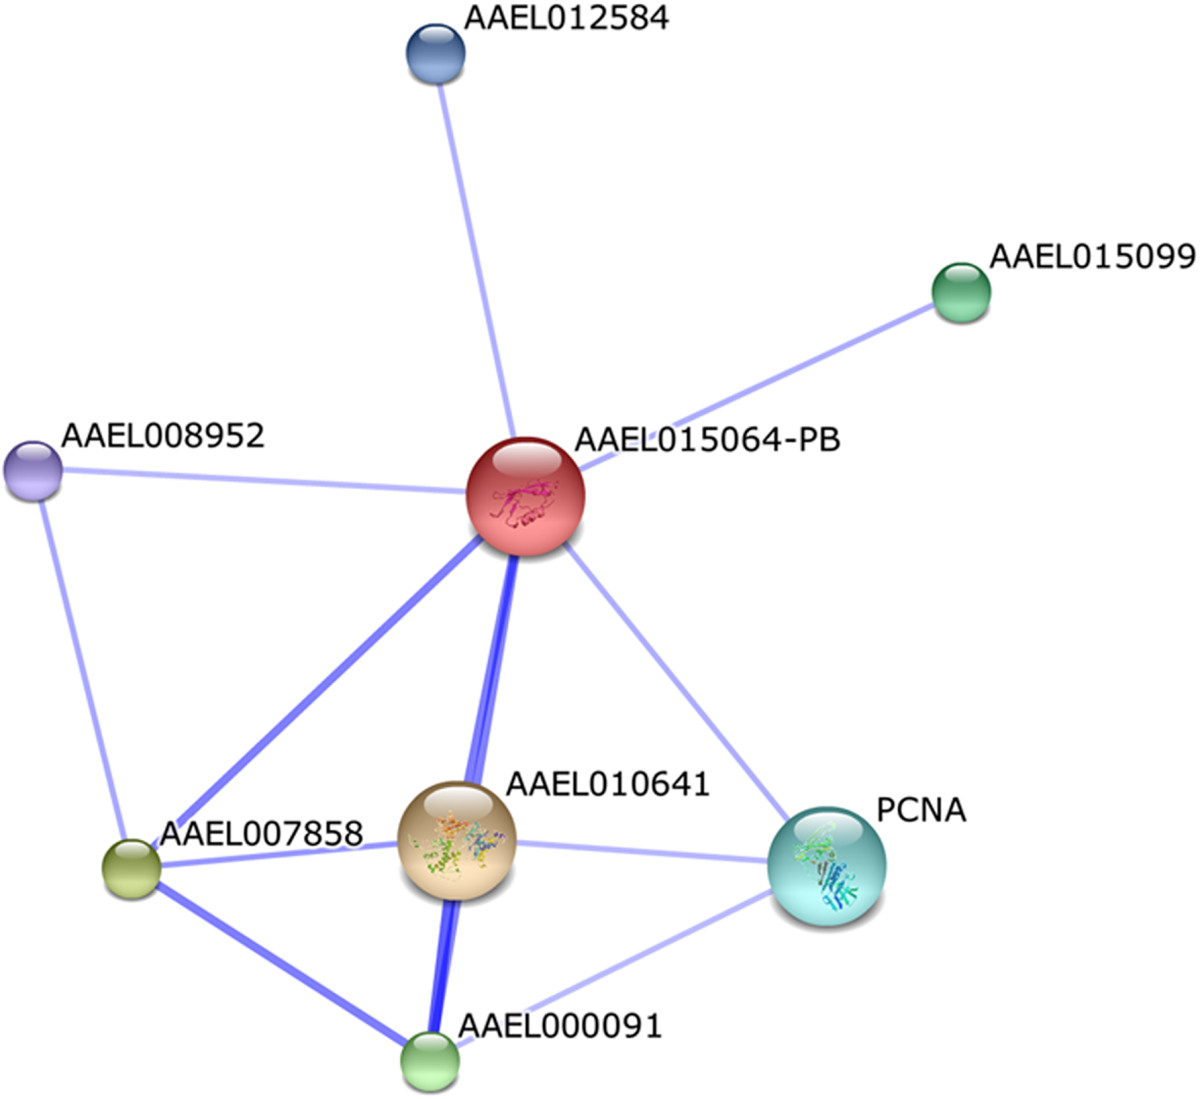 https://static-content.springer.com/image/art%3A10.1186%2F1756-3305-5-290/MediaObjects/13071_2012_Article_817_Fig4_HTML.jpg